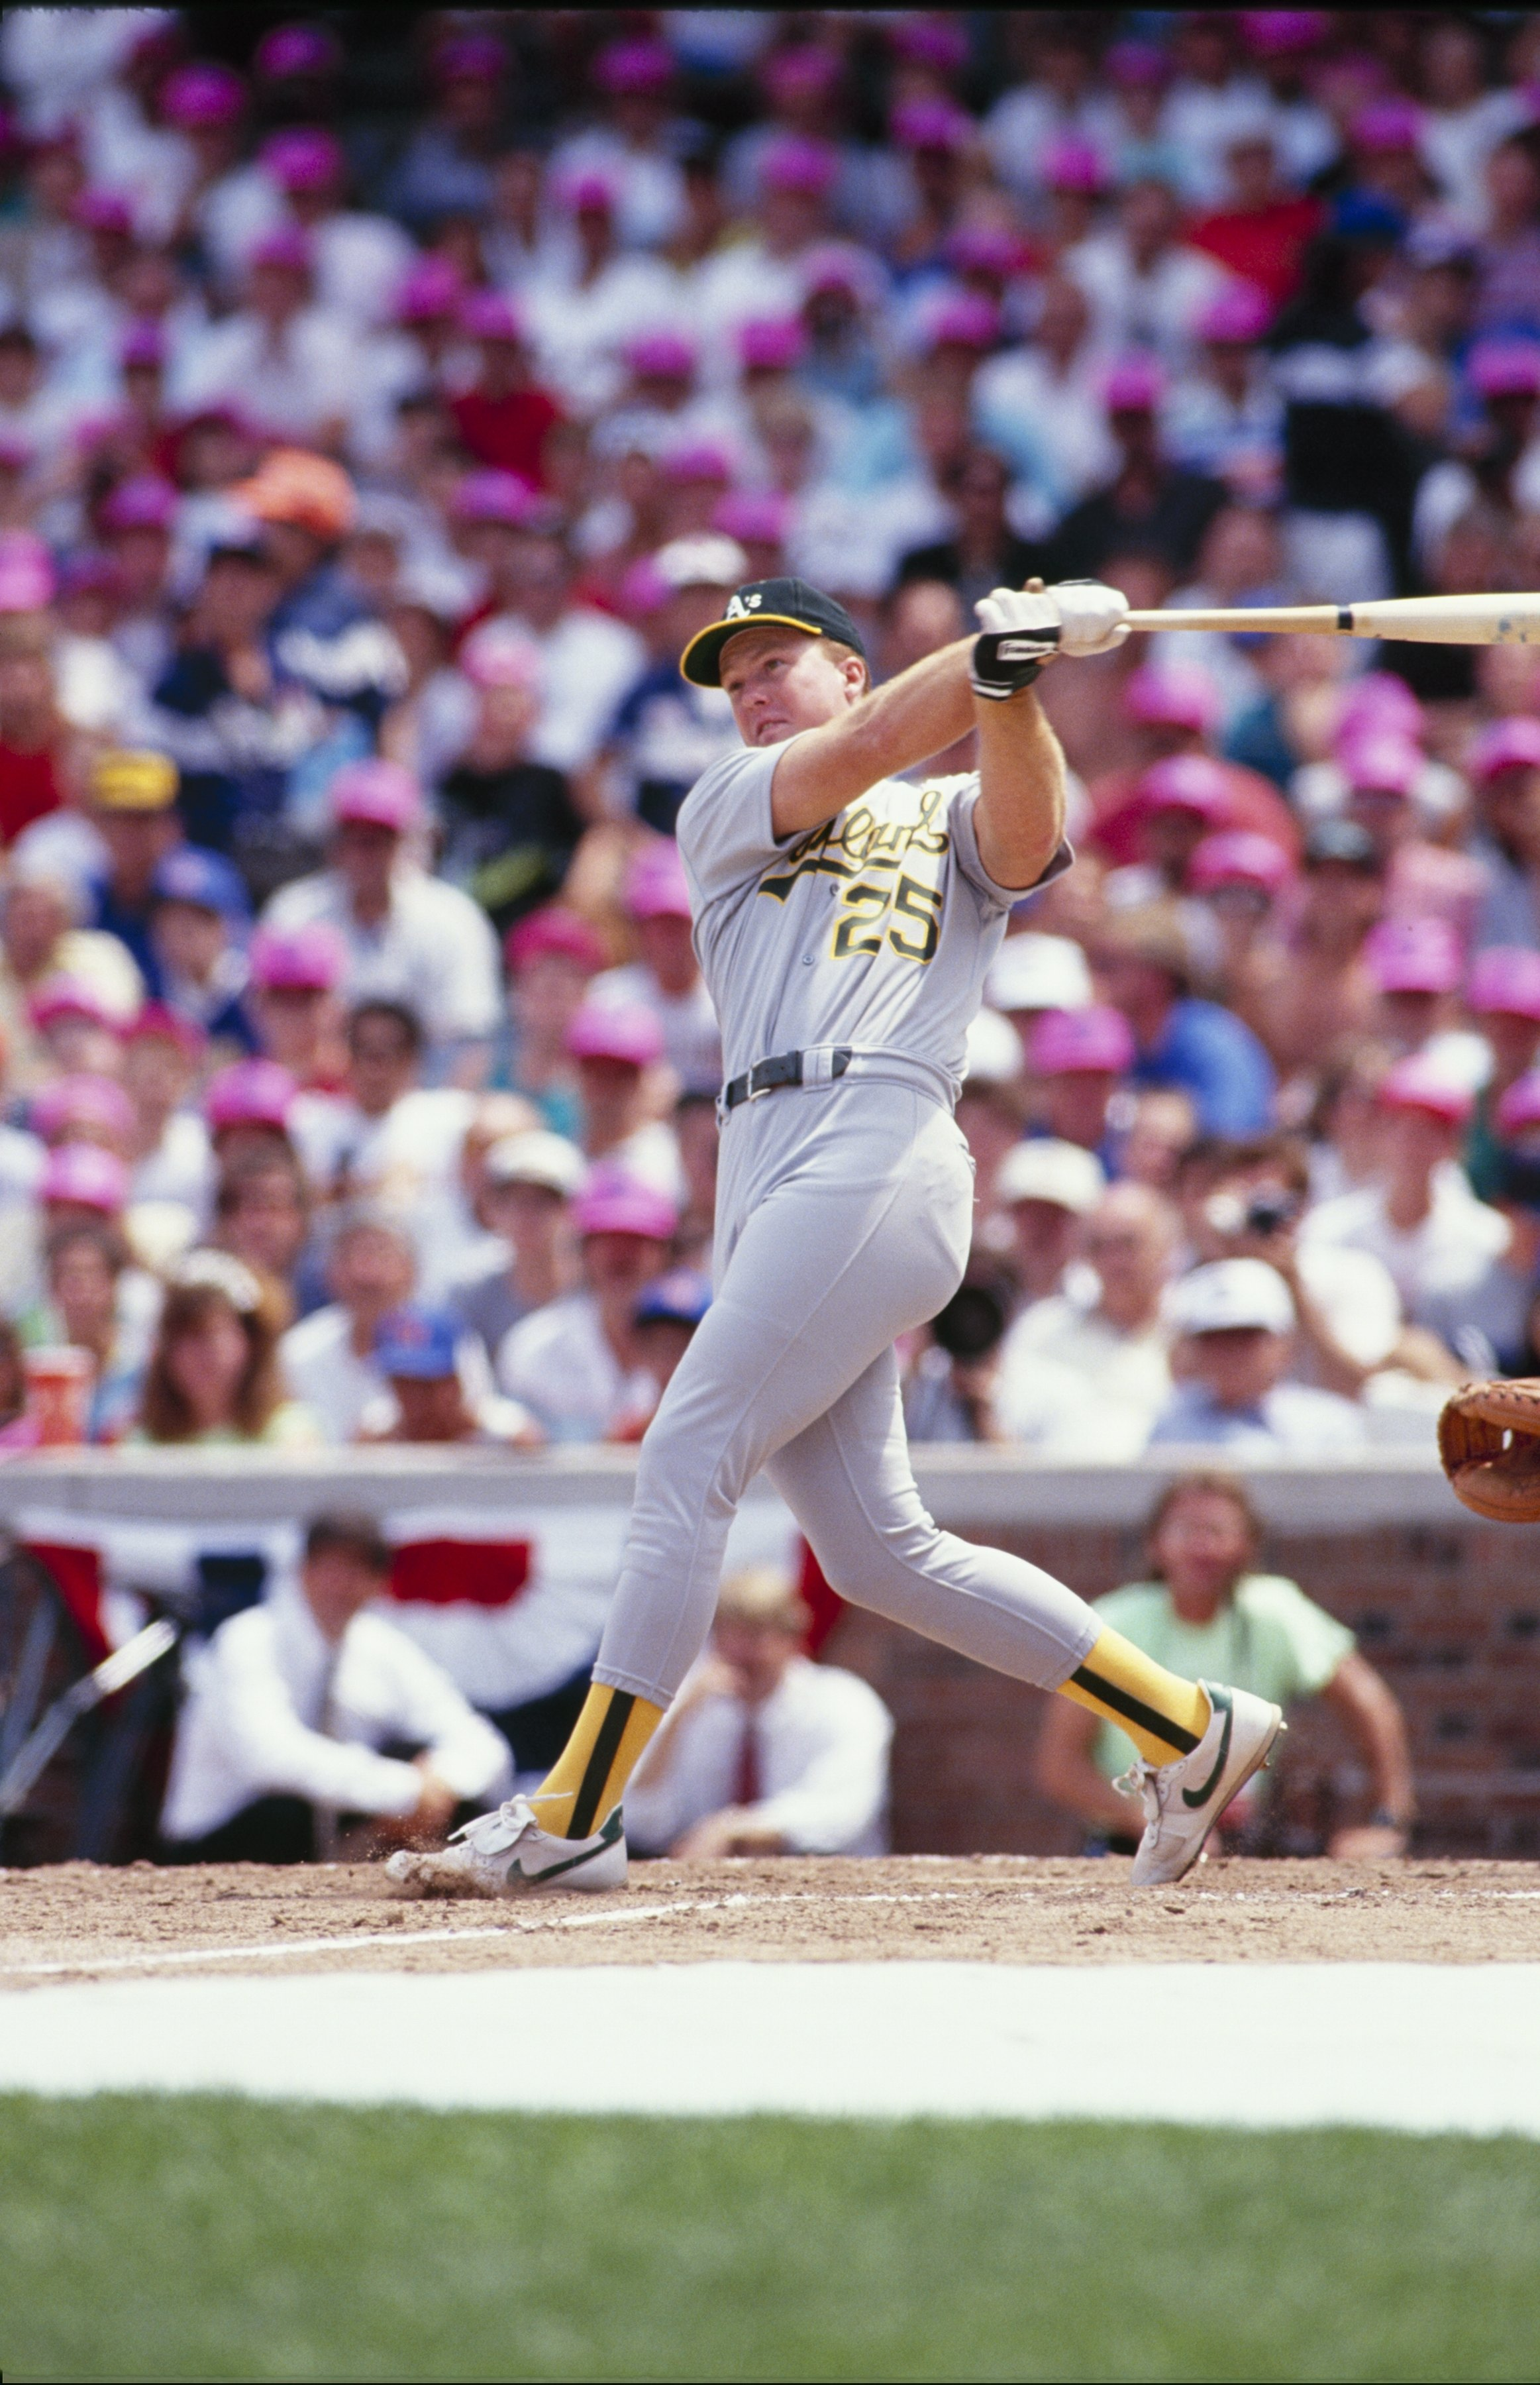 CHICAGO - JULY 1990:  Mark McGuire #25 of the Oakland Athletics bats during batting practice prior to the1990 All-Star Game at Wrigley Field circa July 1990 in Chicago, Illinois. (Photo by Steve Goldstein/Getty Images)